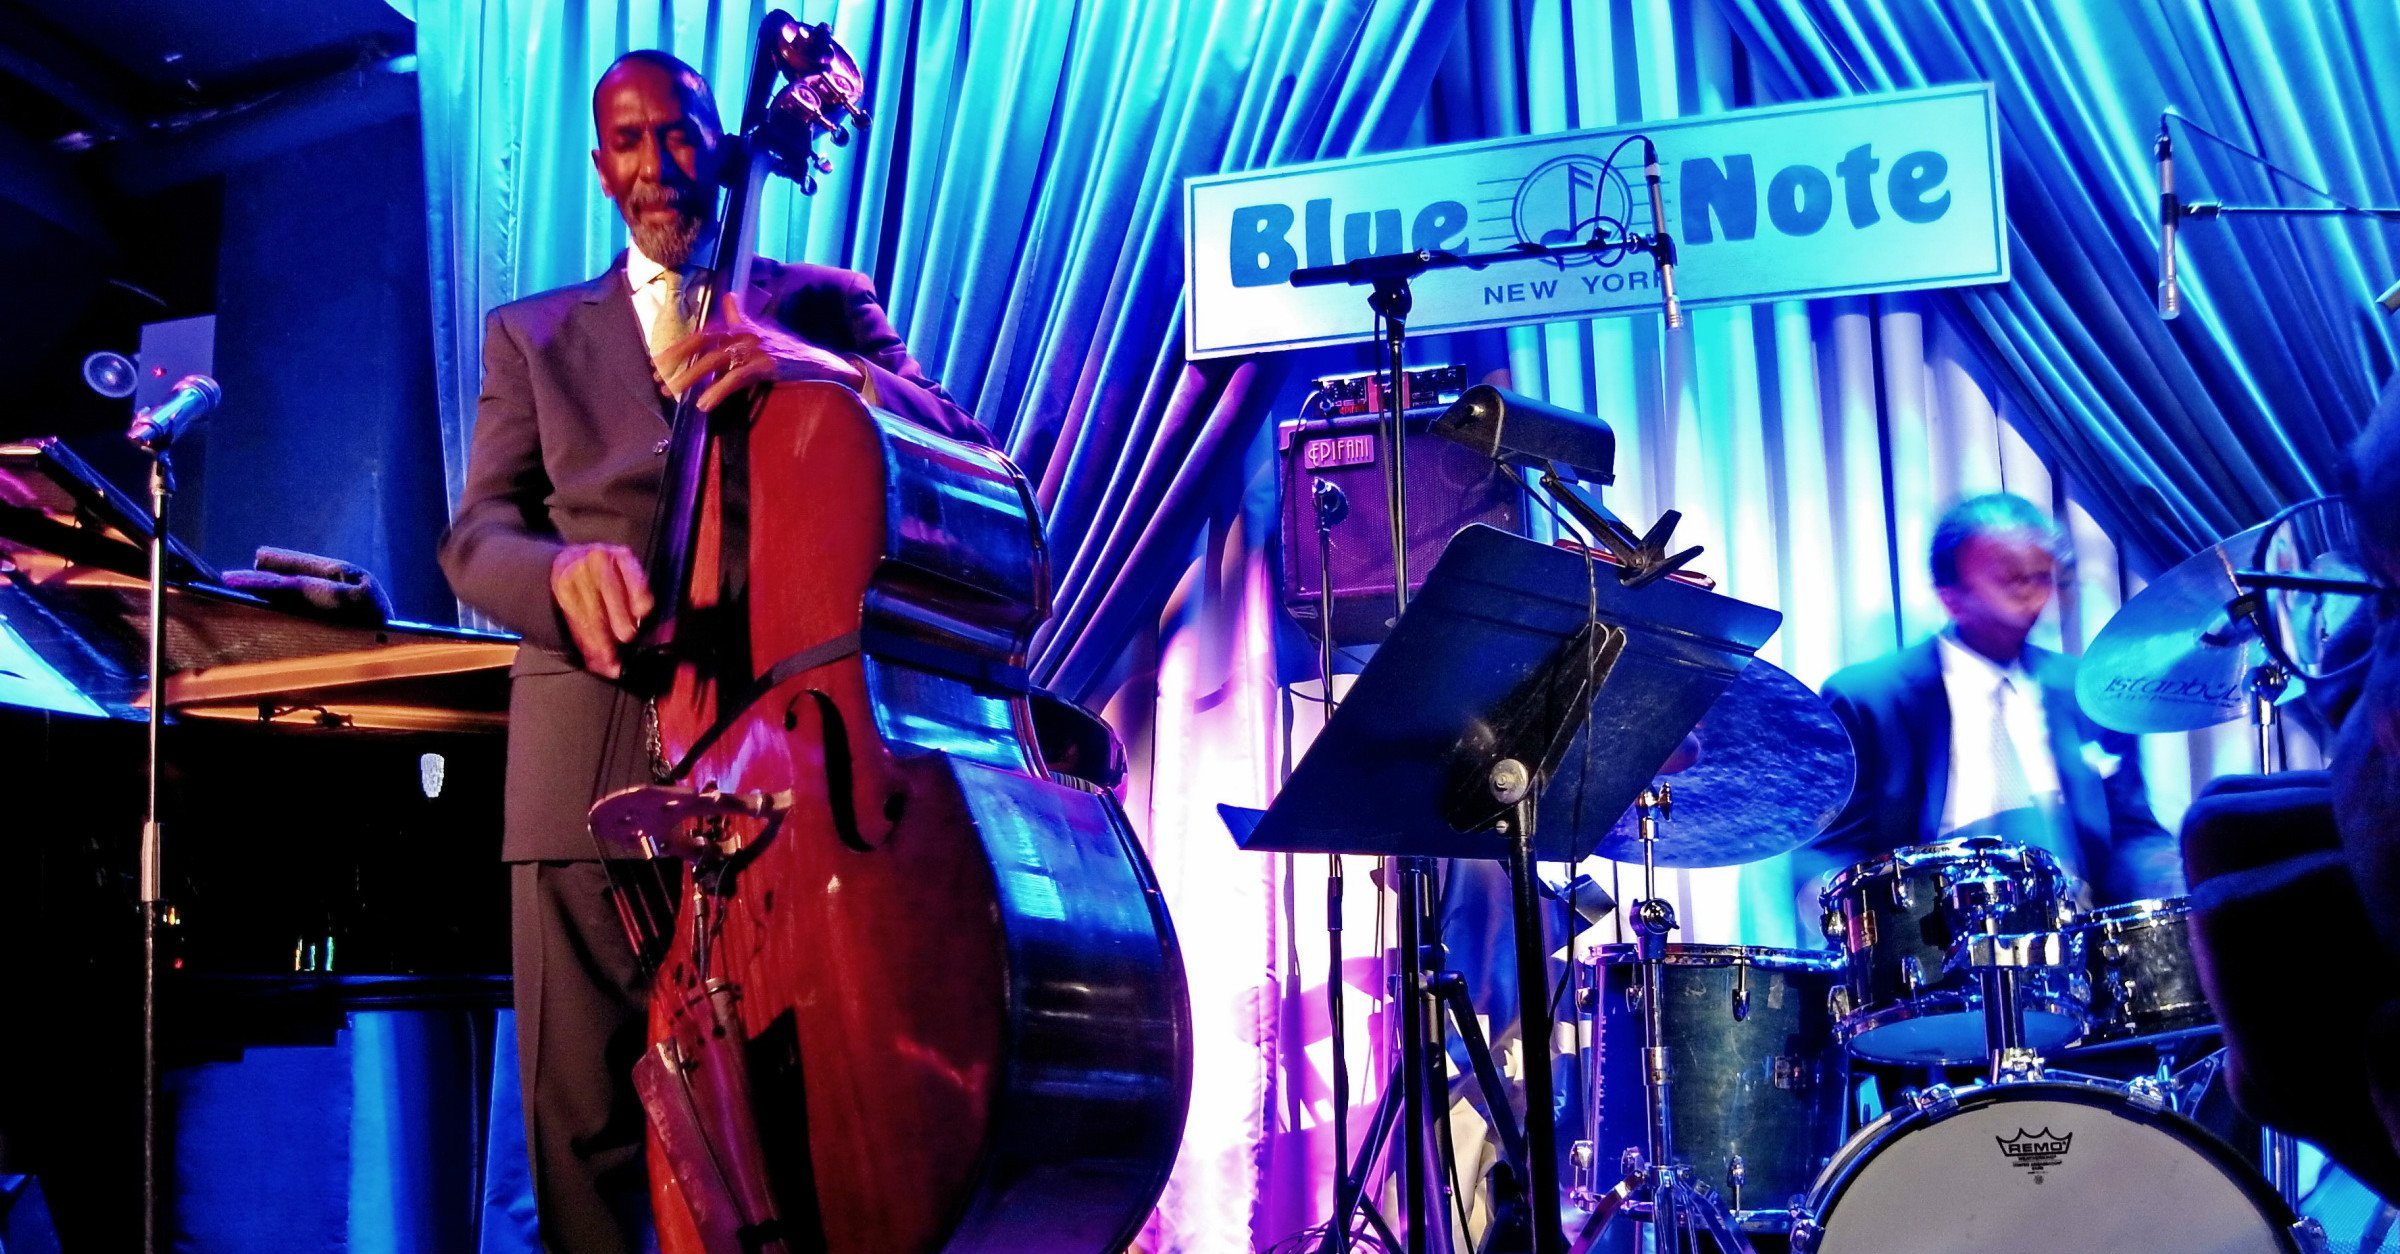 Blues and Jazz in New York City This Week - April 21-April 28